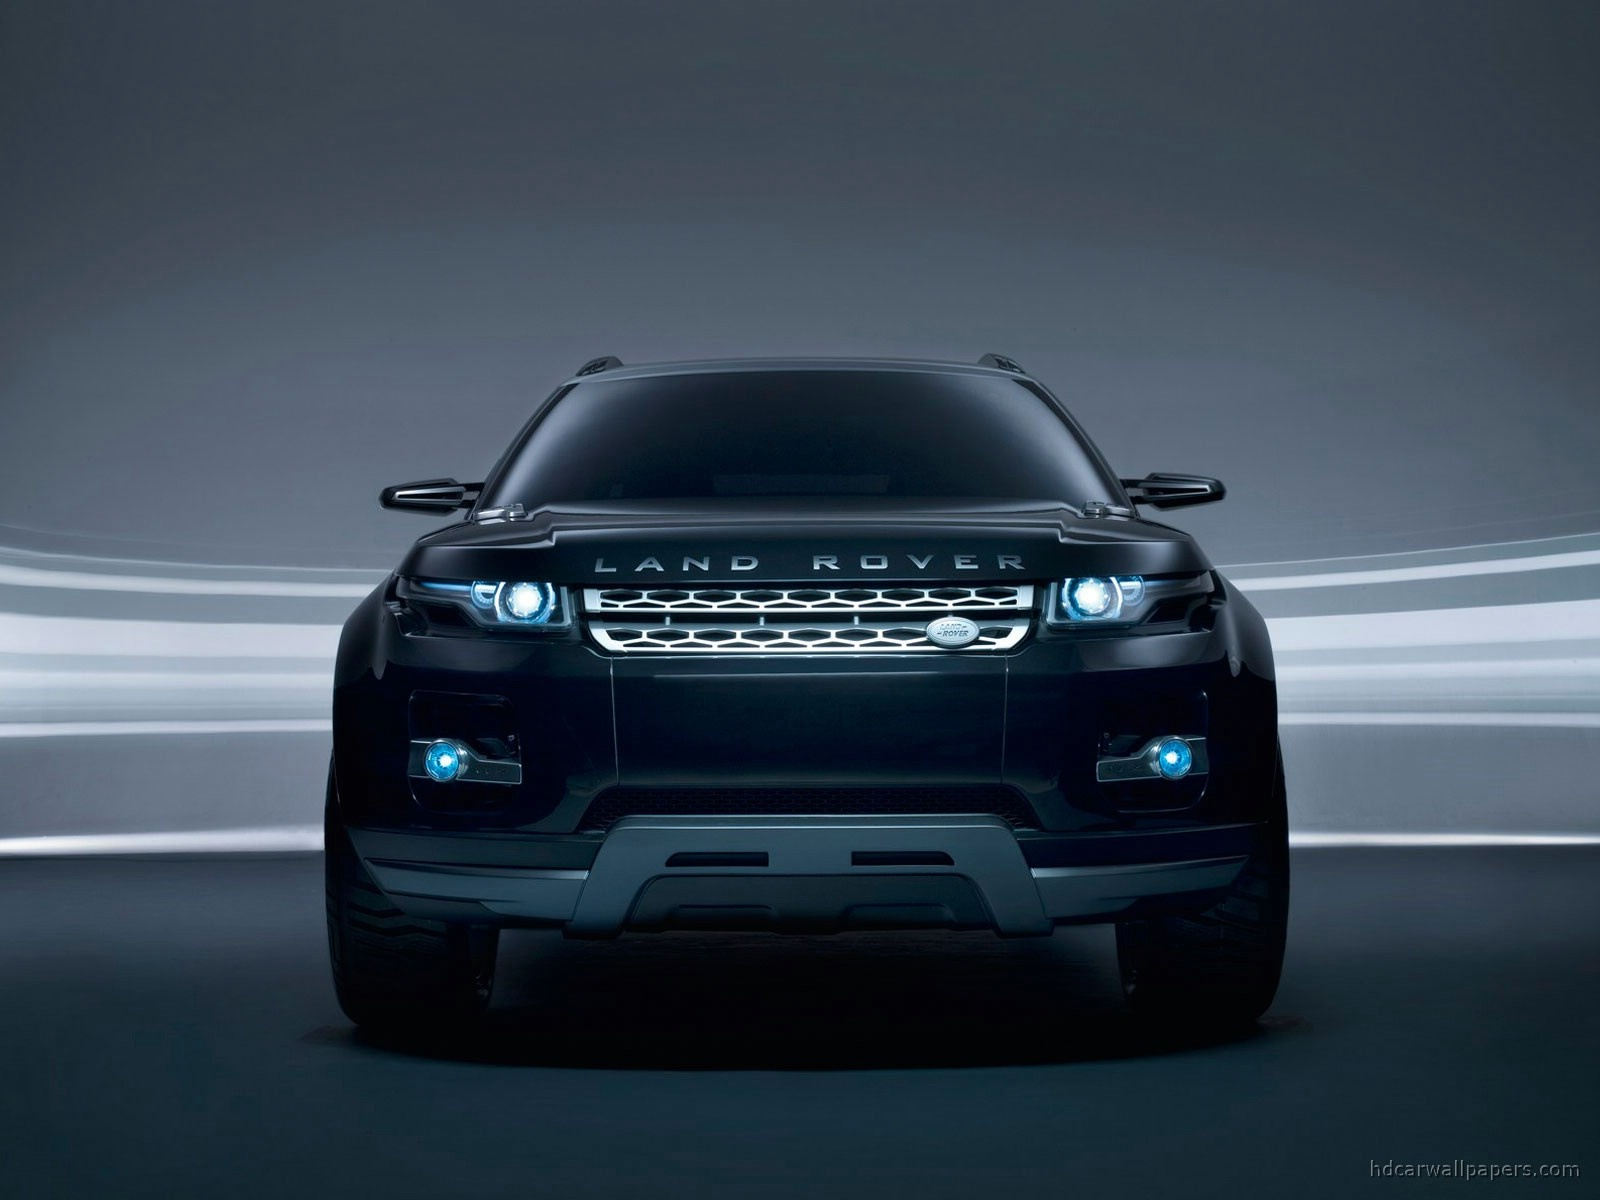 Land Rover Lrx Concept Black 6 Wallpapers In Jpg Format For Free